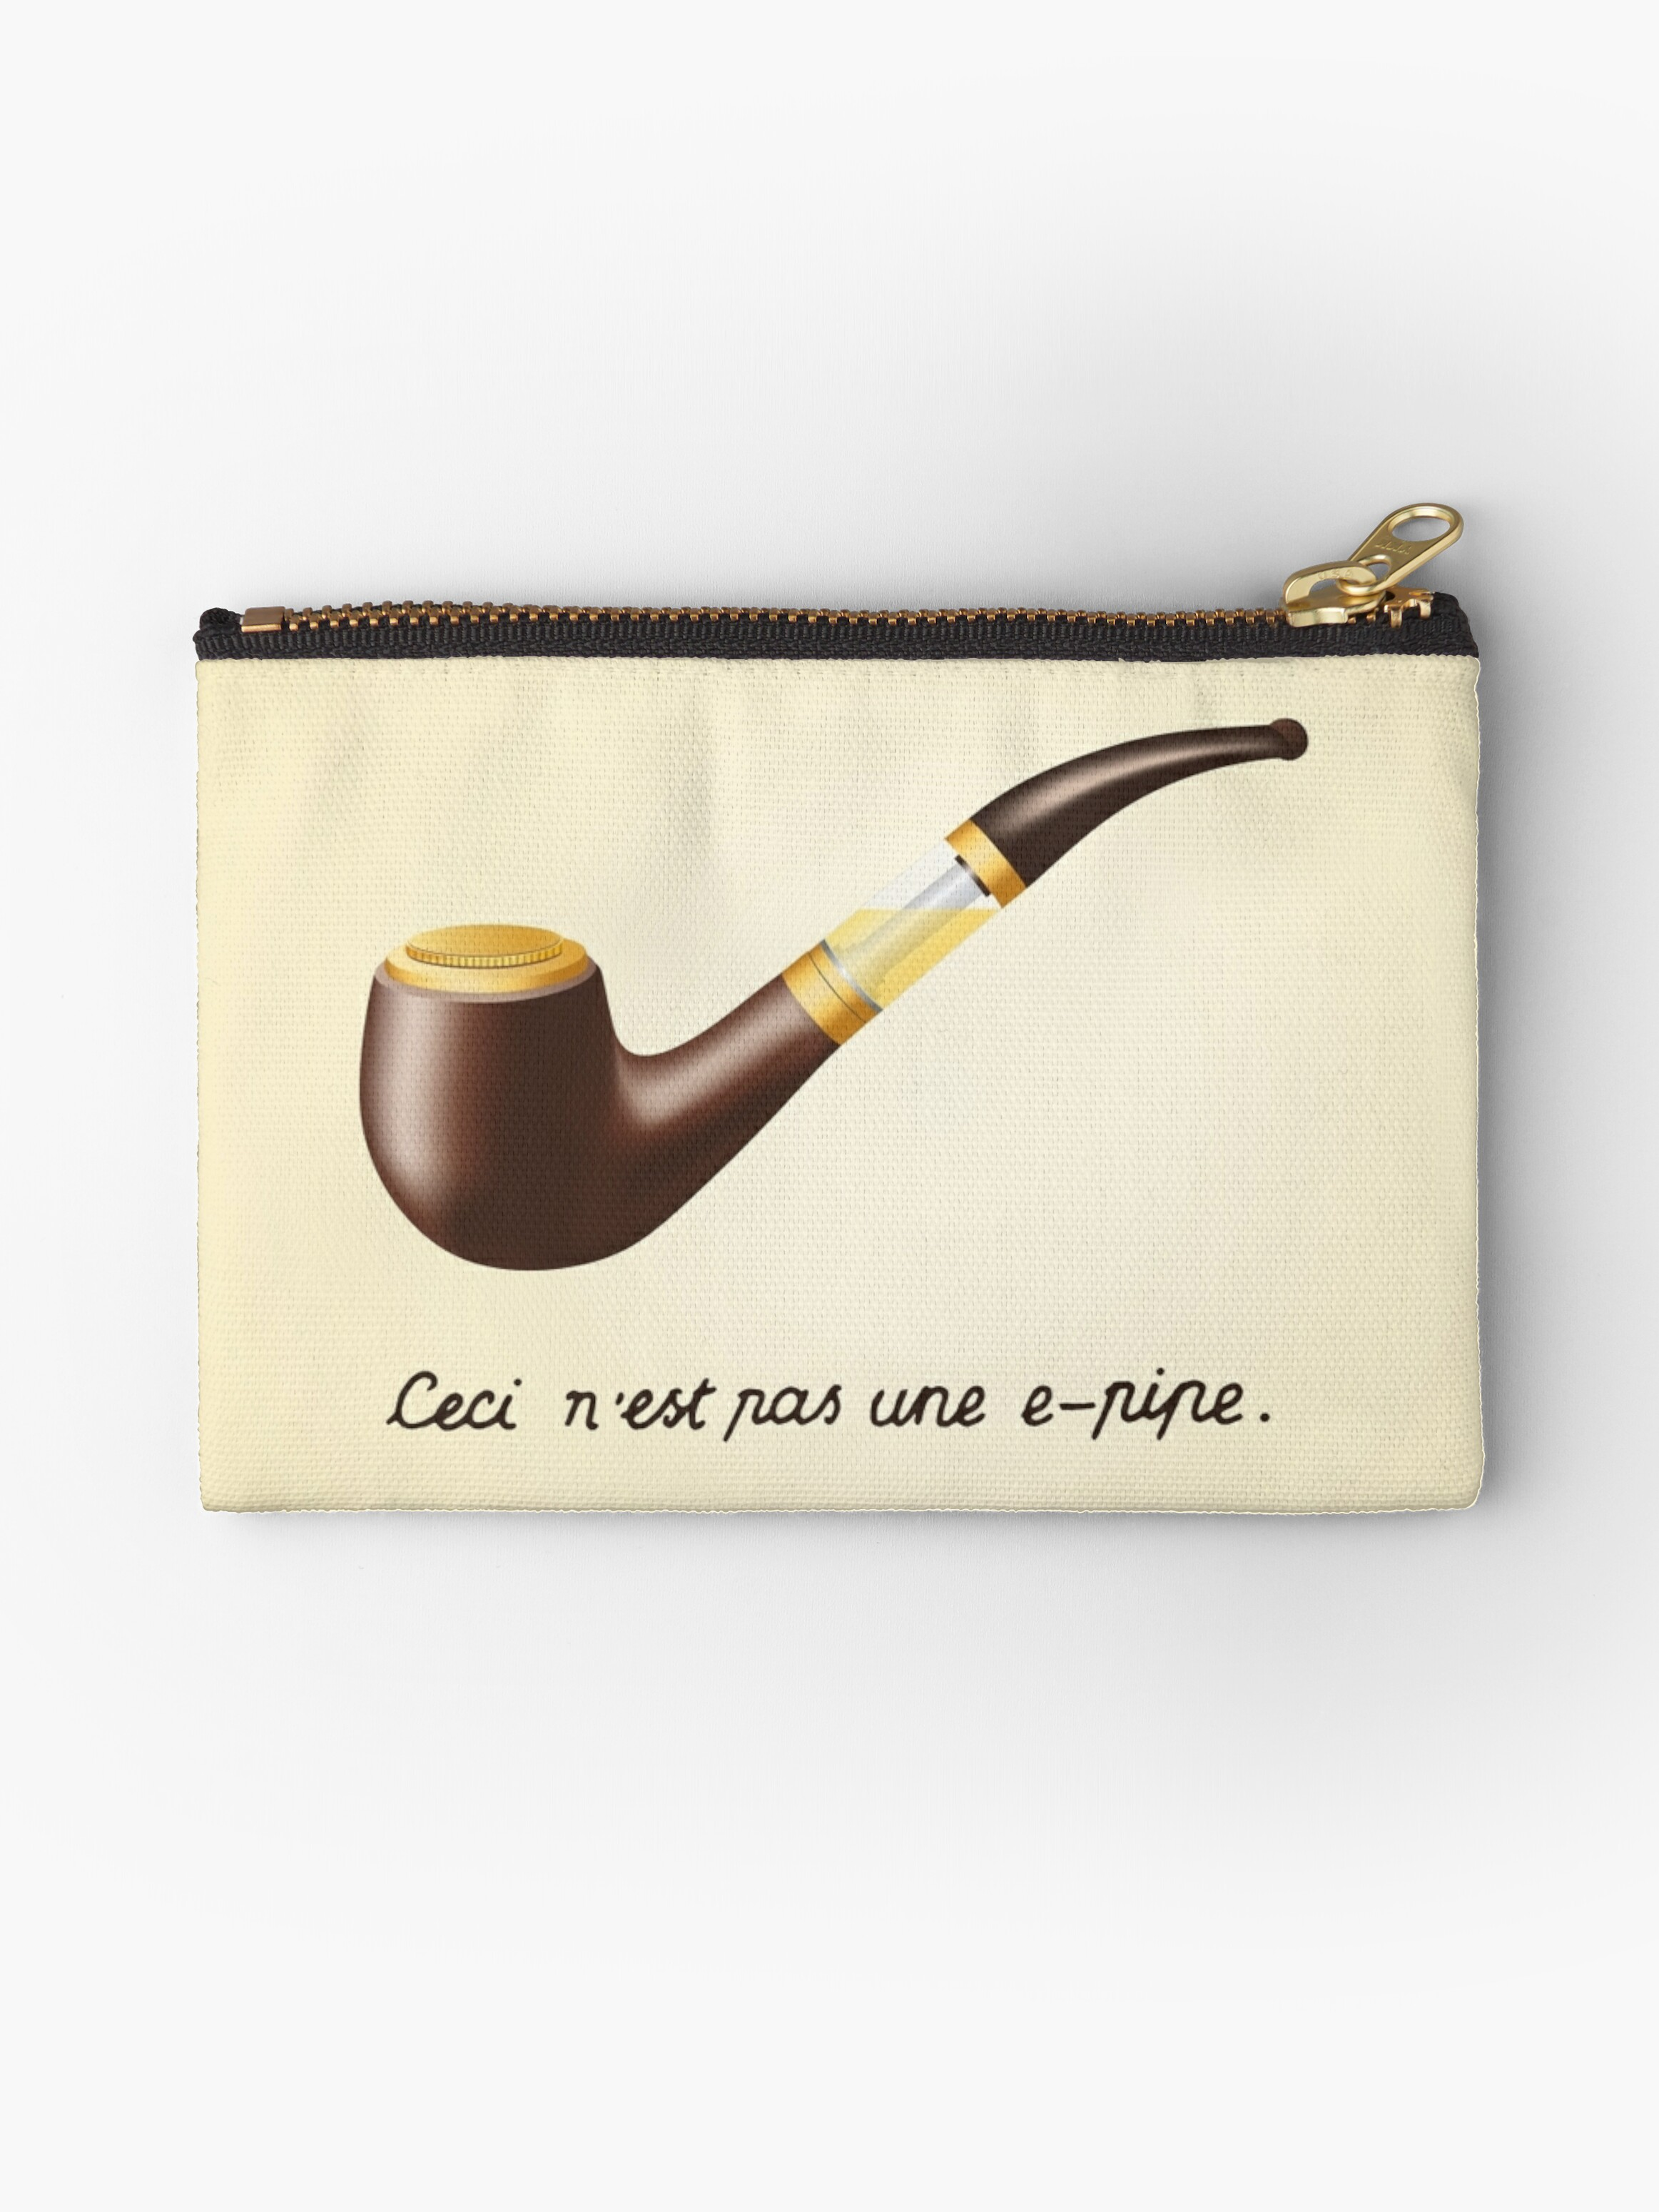 ceci n 39 est pas une e pipe studio pouches by vapeorama redbubble. Black Bedroom Furniture Sets. Home Design Ideas